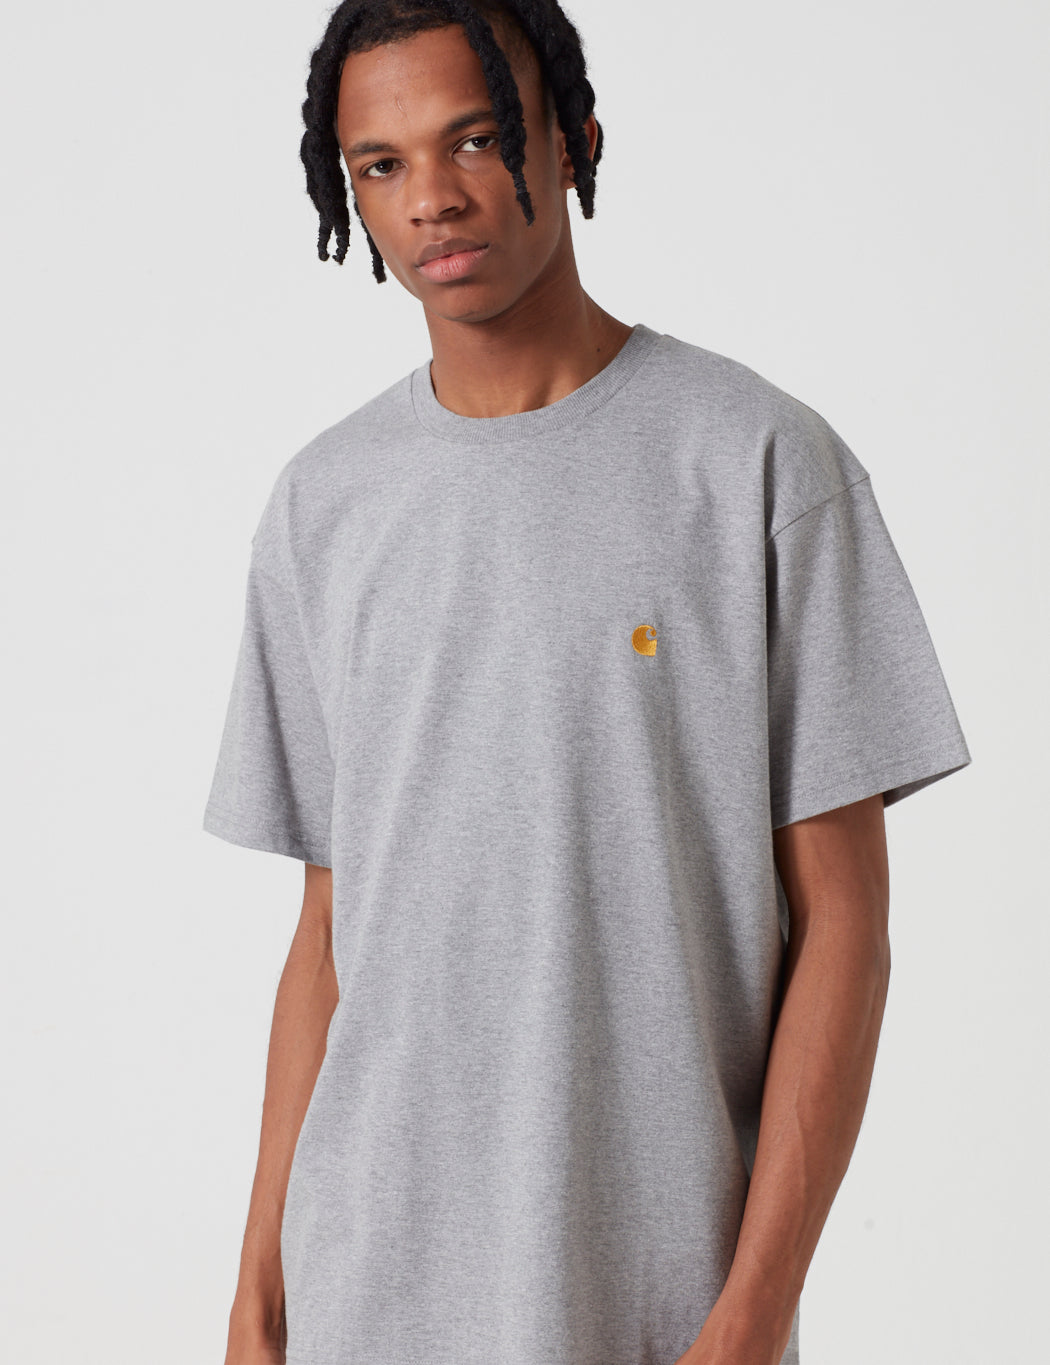 Carhartt-WIP Chase T-Shirt - Grey Heather